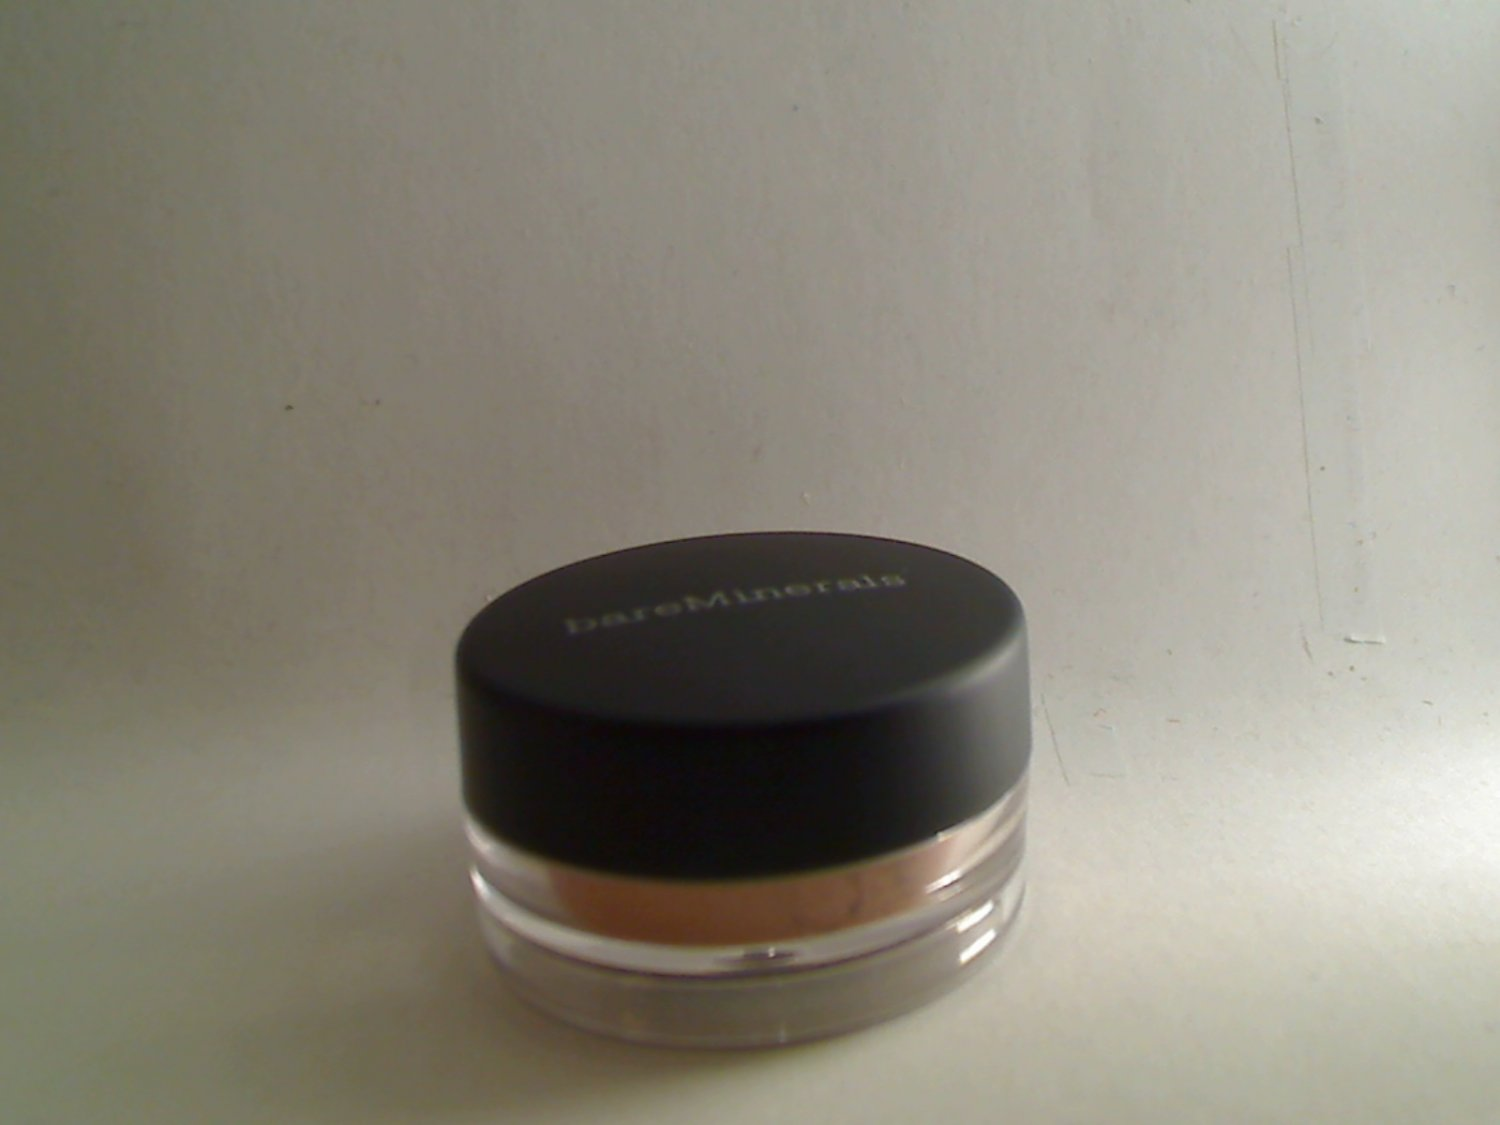 Bare Escentuals bareMinerals Eyecolor Minerals Eye Shadow Color Captivate discontinued